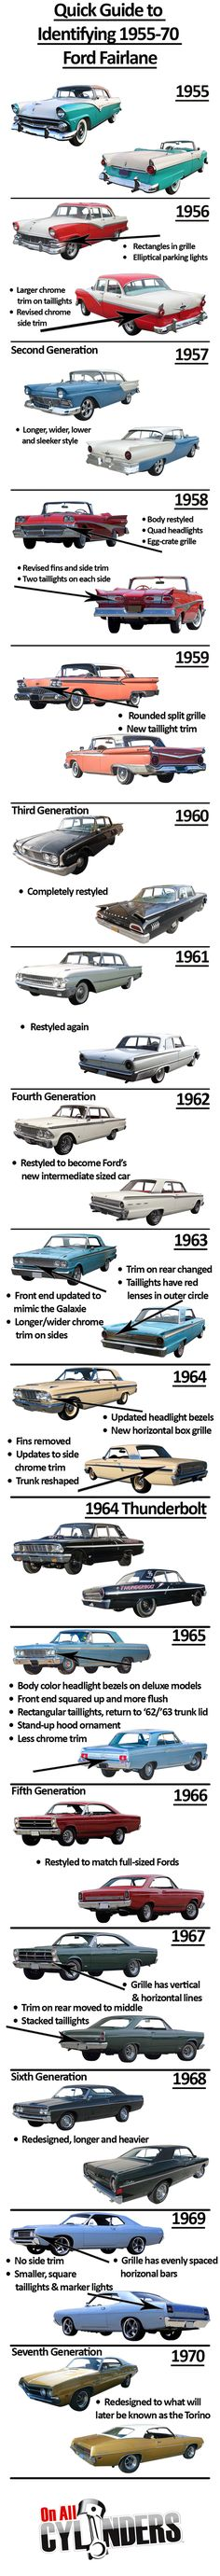 The Ford Fairlane was born in model-year 1955, and shared some design similarities with the more-famous Tri-Five Chevys as well as their Buick counterparts. The Fairlane was named after Henry Ford&…